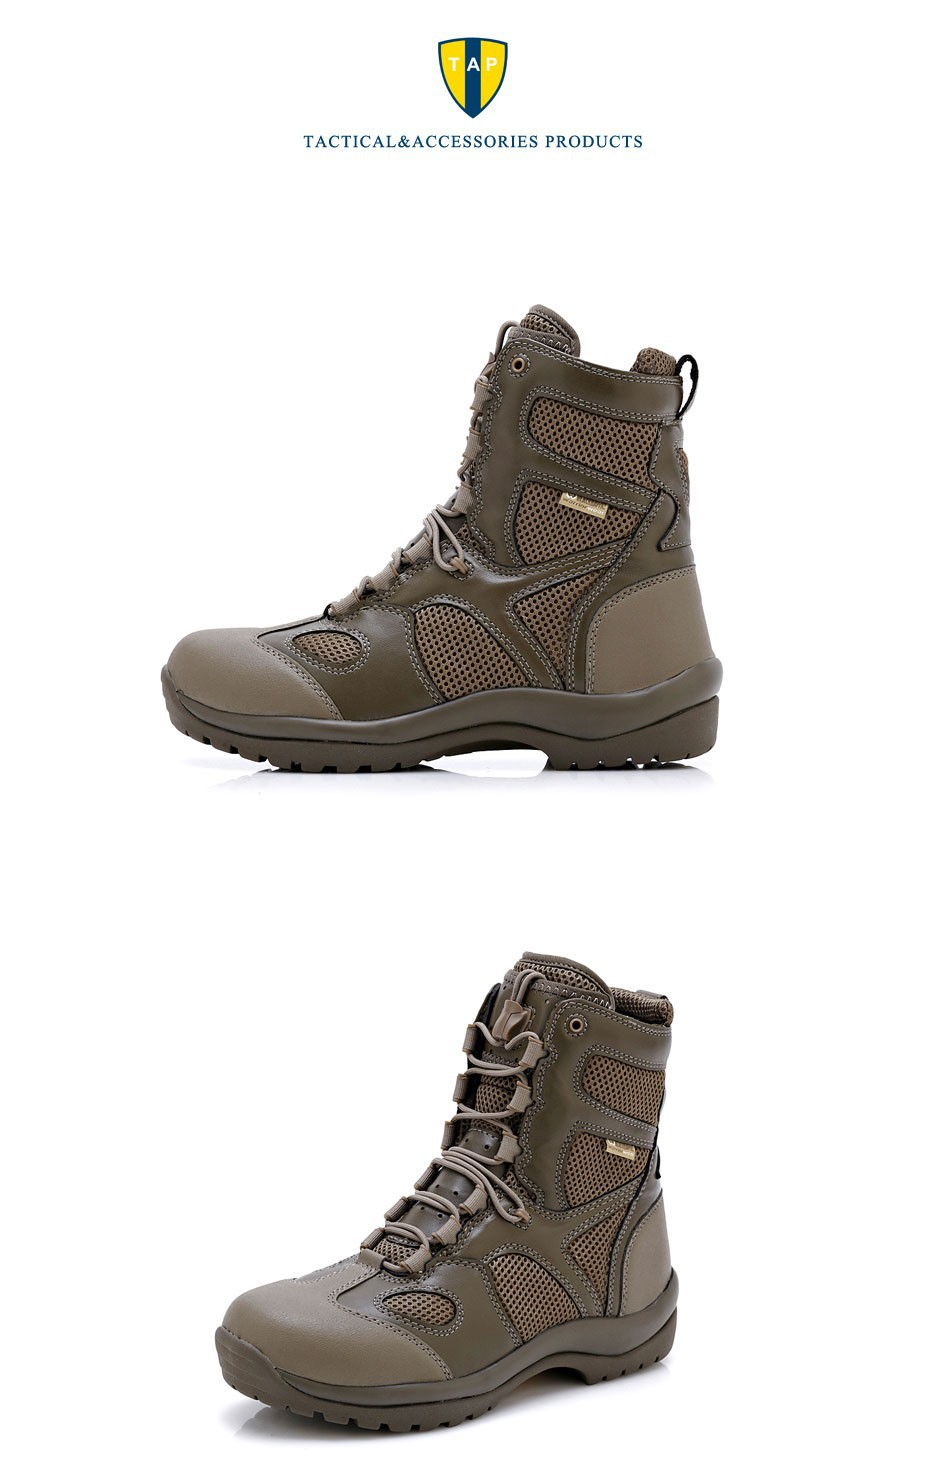 Blackhawk Military Men Boots Tactical Combat Outdoor Army Shoes